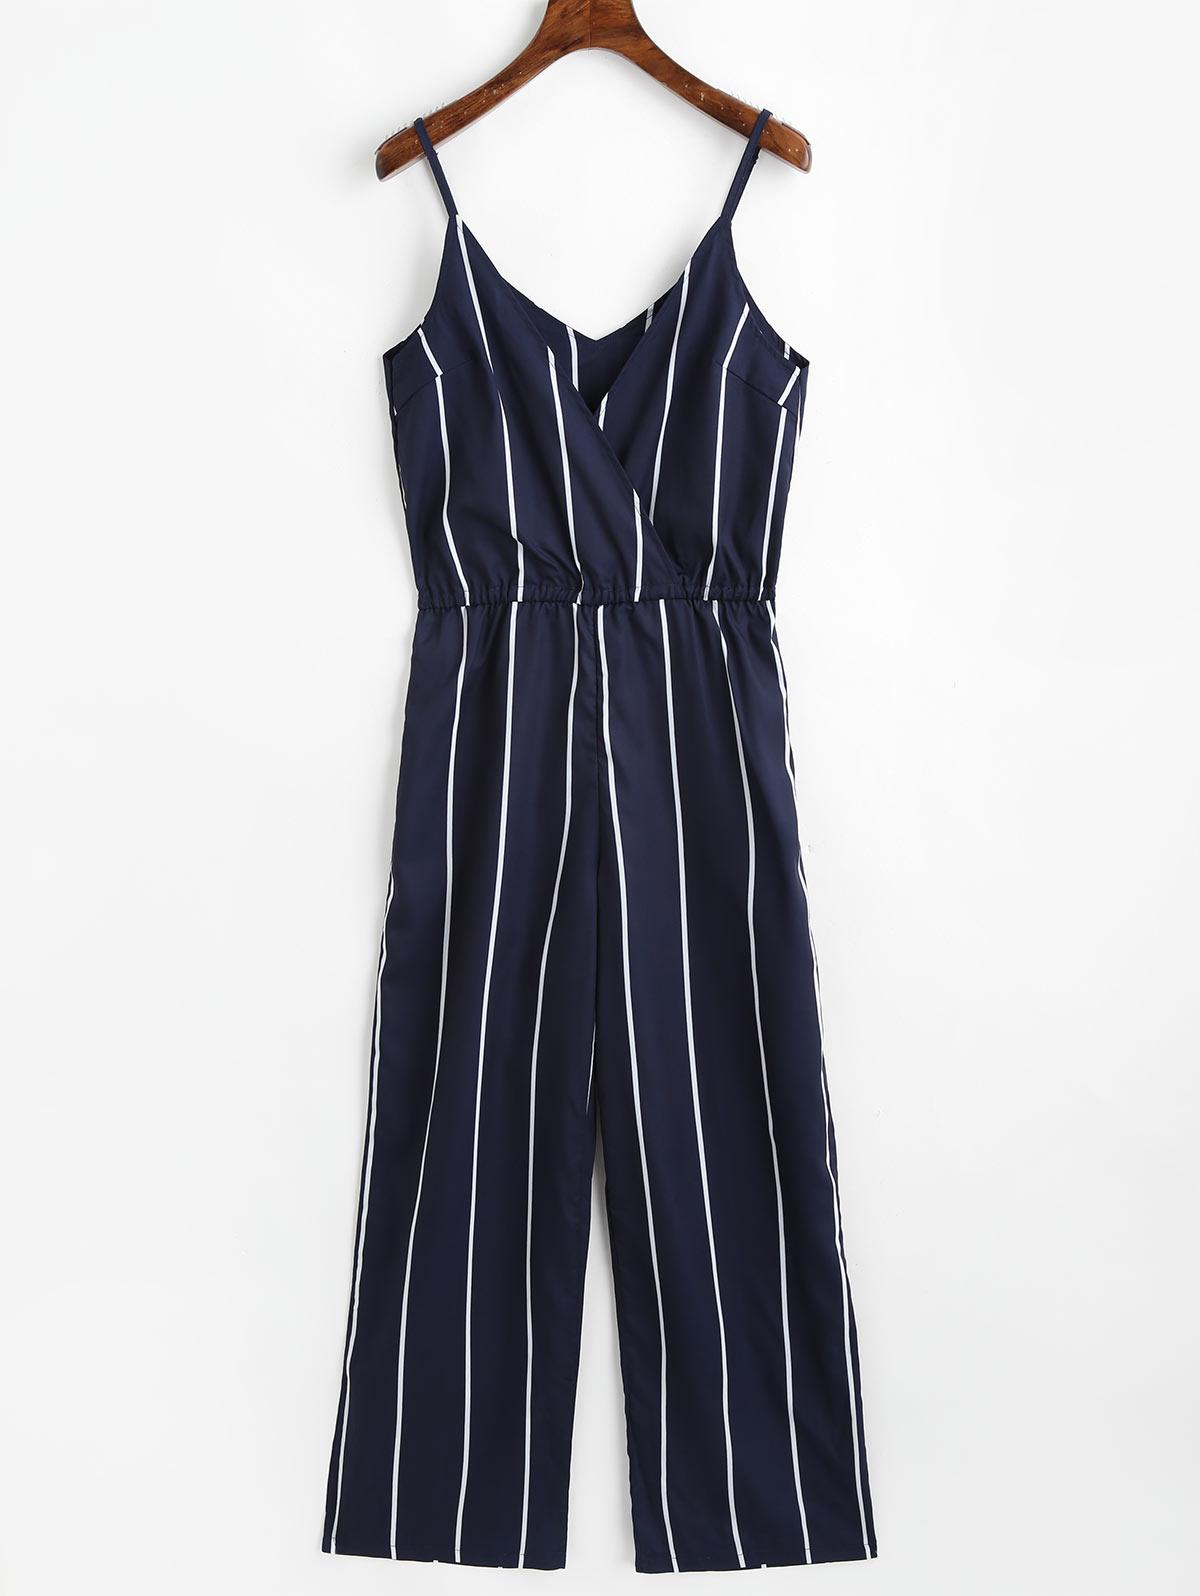 fac75a2e134a Wholesale Women Striped Jumpsuit Spaghetti Strap Sleeveless V-Neck Romper  Casual Women Jumpsuits Summer Female Overalls Jumpsuits Jumpsuit Online  with ...